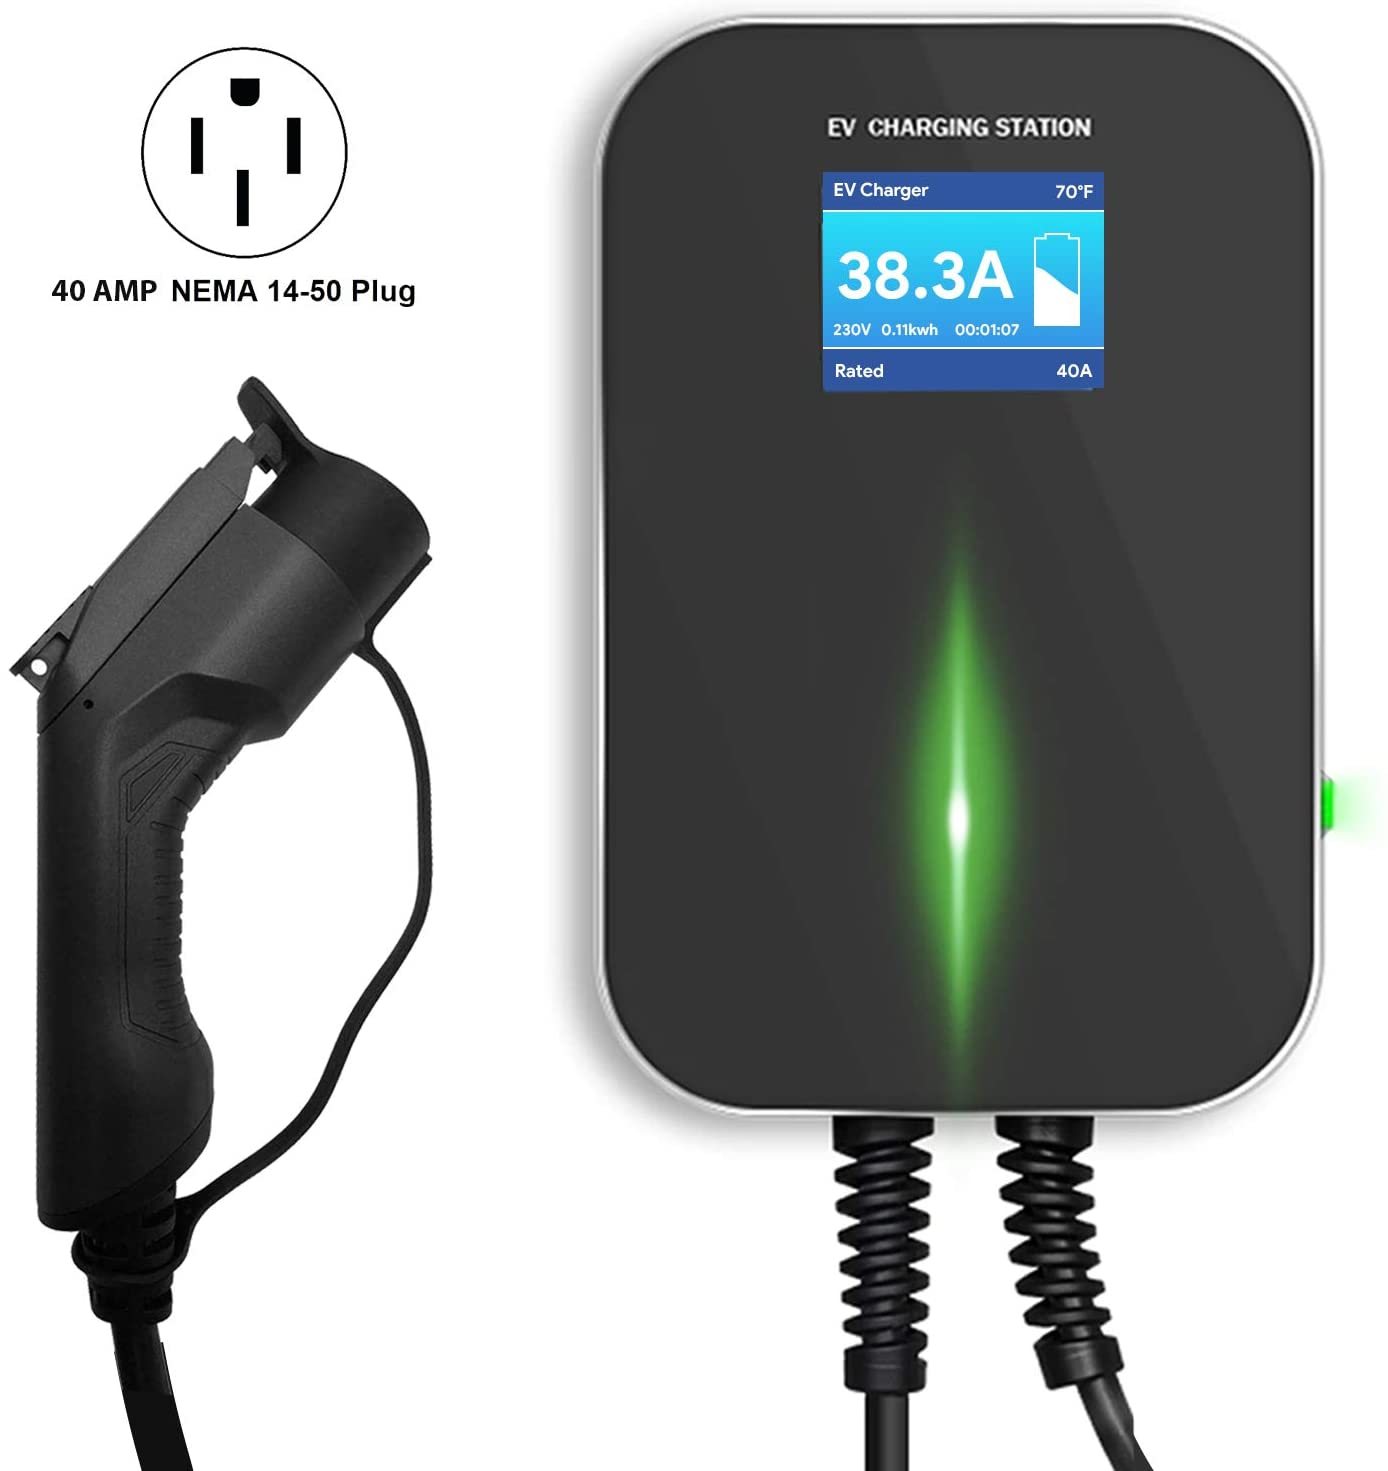 Lectron 240V 40 Amp Level 2 Electric Vehicle (EV) Charging Station with 20ft/6m J1772 Cable & NEMA 14-50 Plug - EVSE 9.6kW Compatible with All SAE J1772 Electric Vehicles